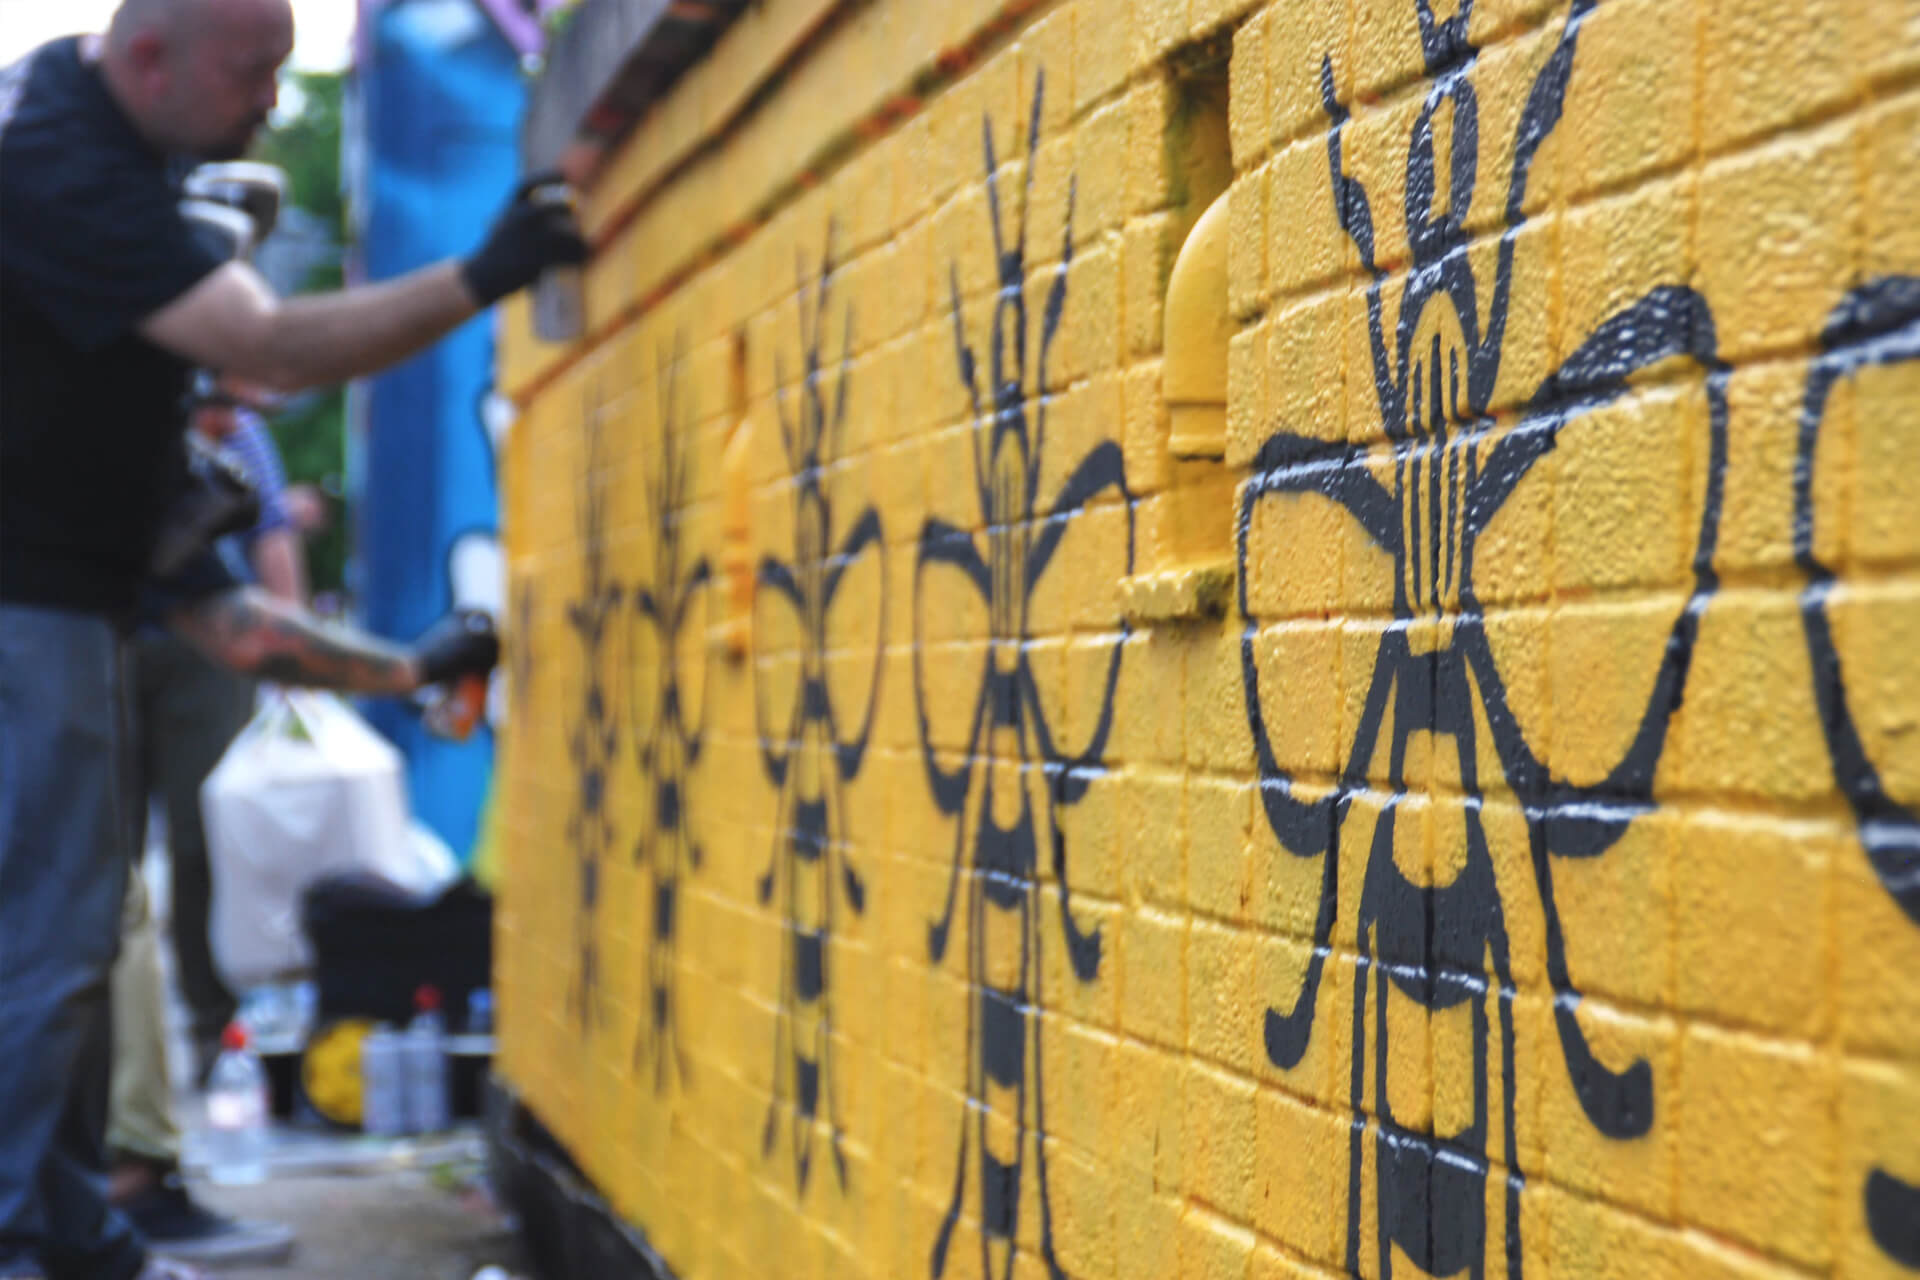 A yellow wall with the 'Manchester Bee' symbol painted on it multiple times